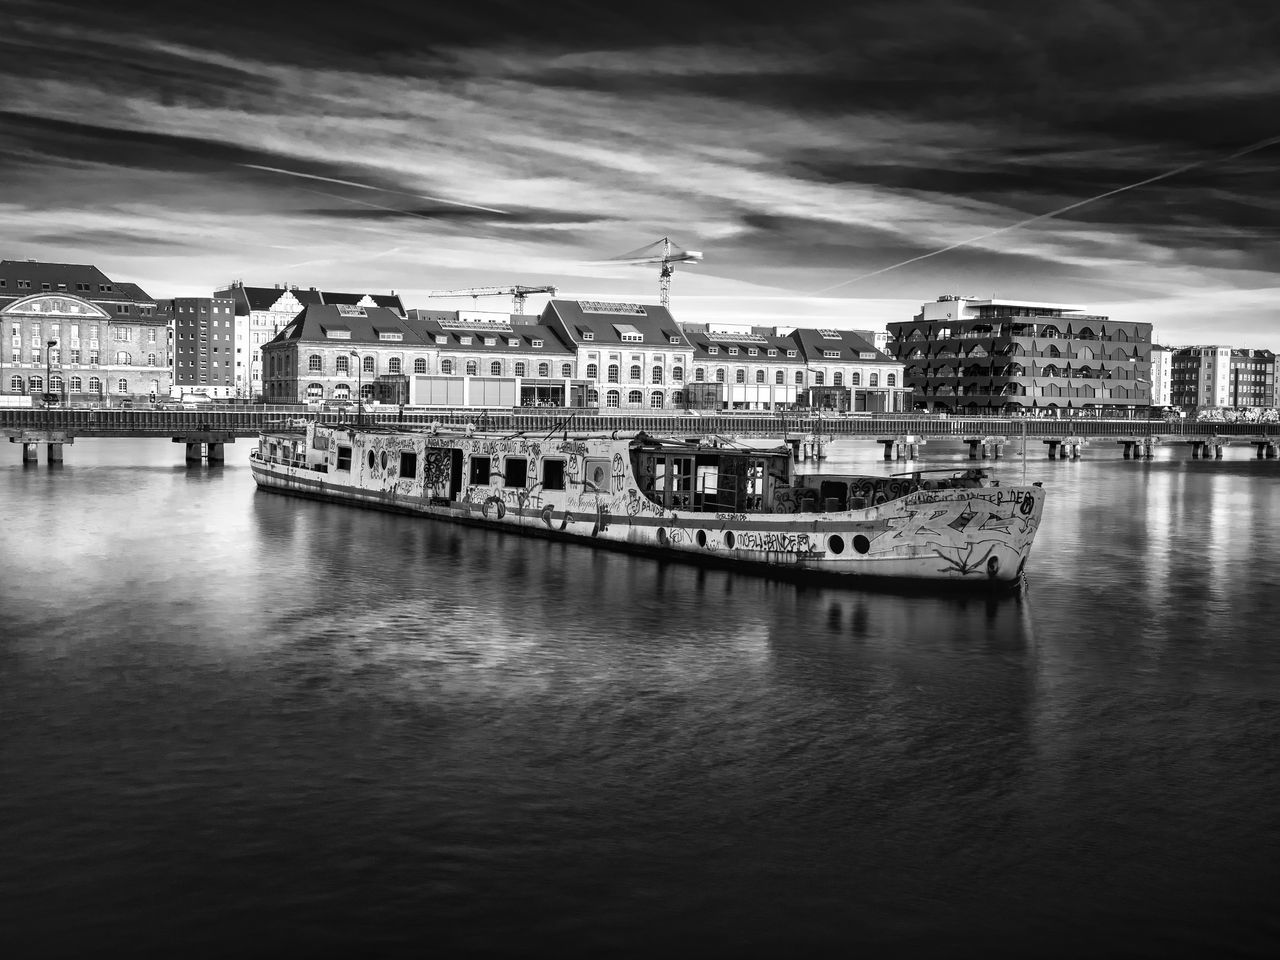 Architecture Berlin Black And White Boat Building Exterior City Cityscape Cityscape Day Dramatic Sky Germany Long Exposure Monochrome No People Old Boat One Animal Outdoors Sky Water